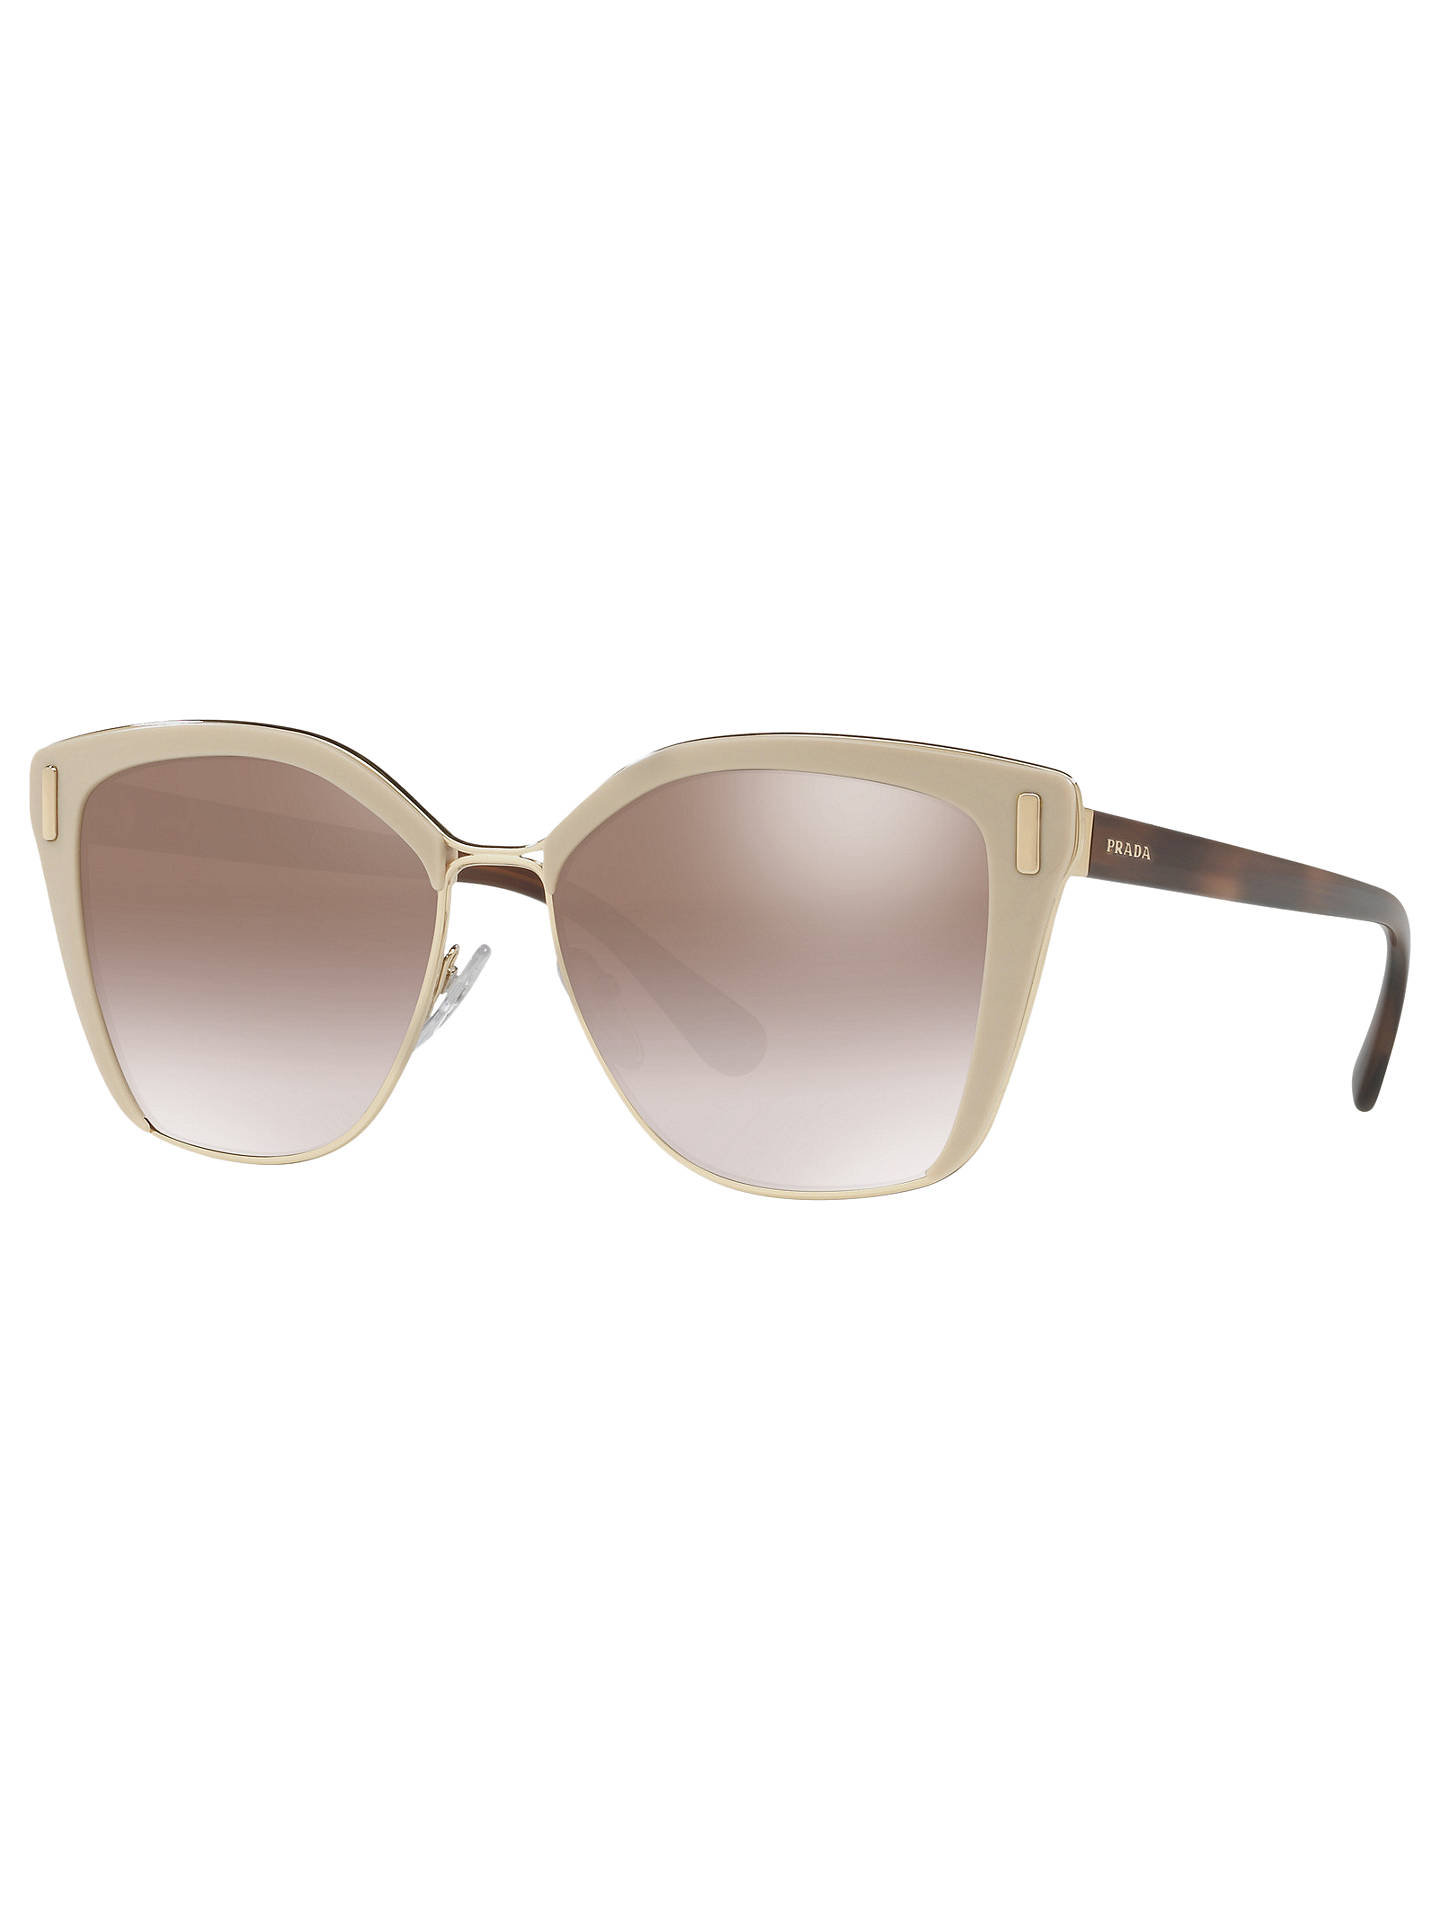 be6485baba0e Prada PR 56TS Square Sunglasses at John Lewis   Partners